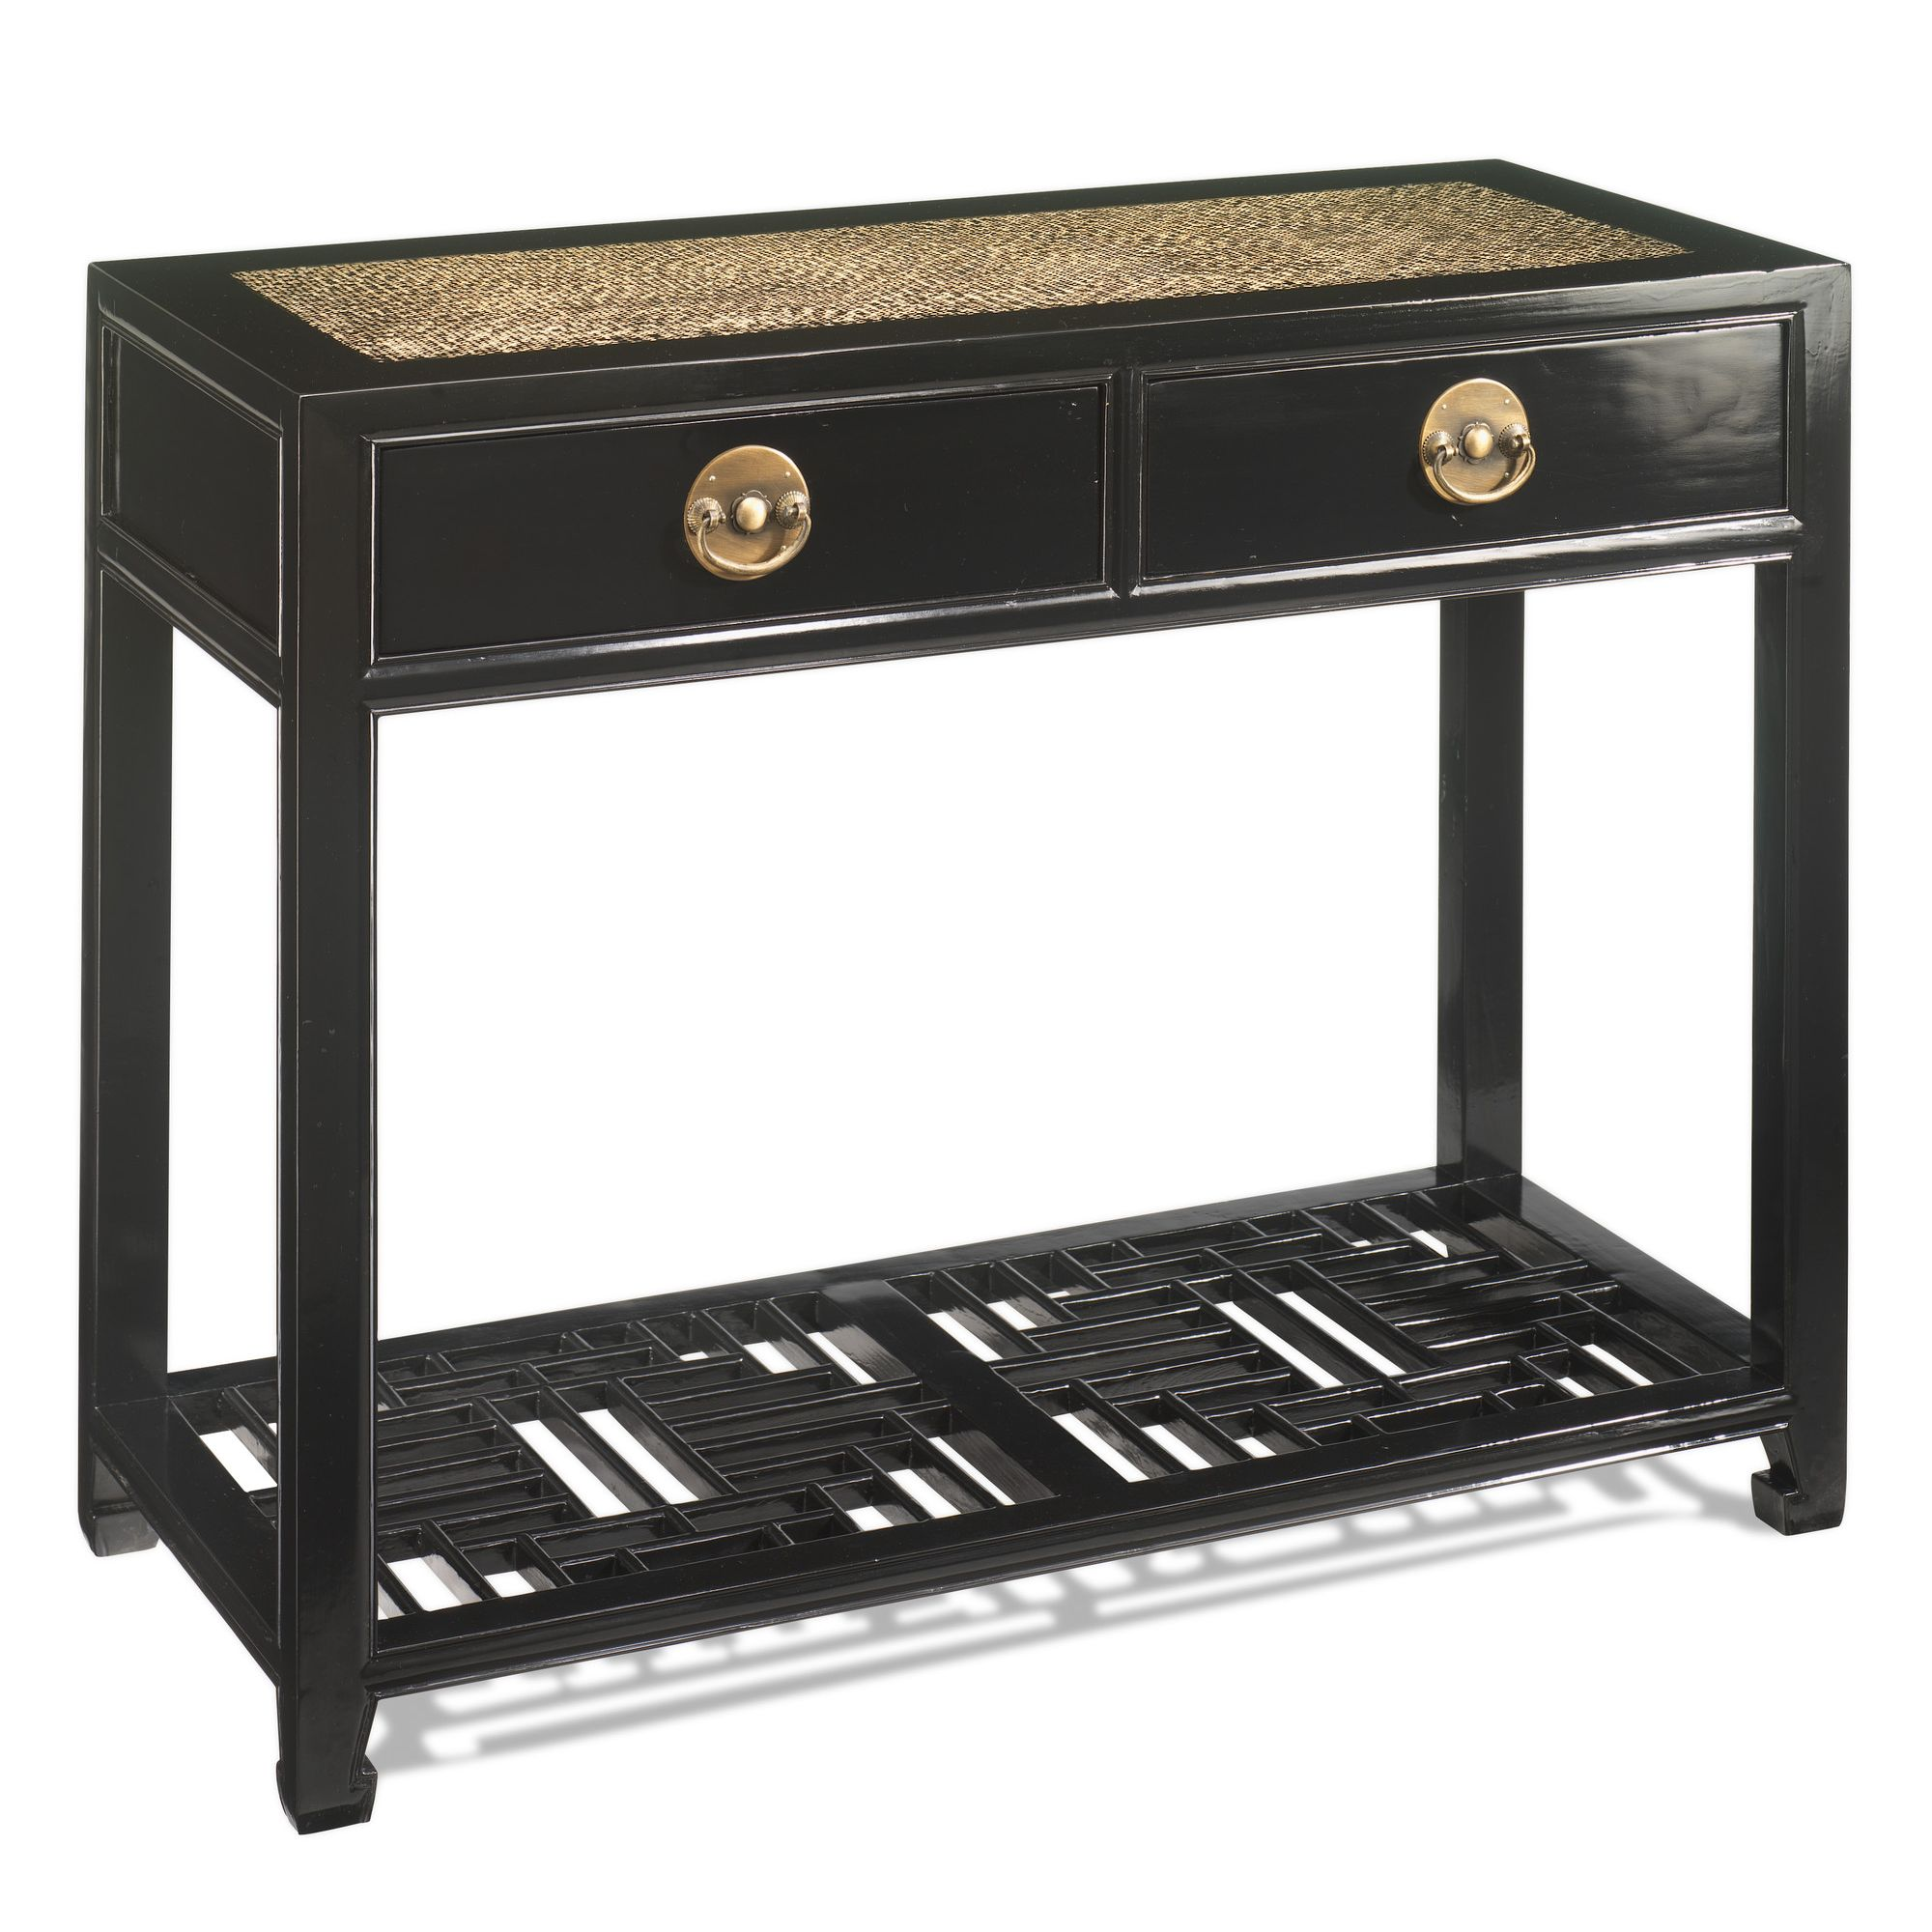 Shimu Chinese Classical Carved Console Table - Black Lacquer at Tesco Direct